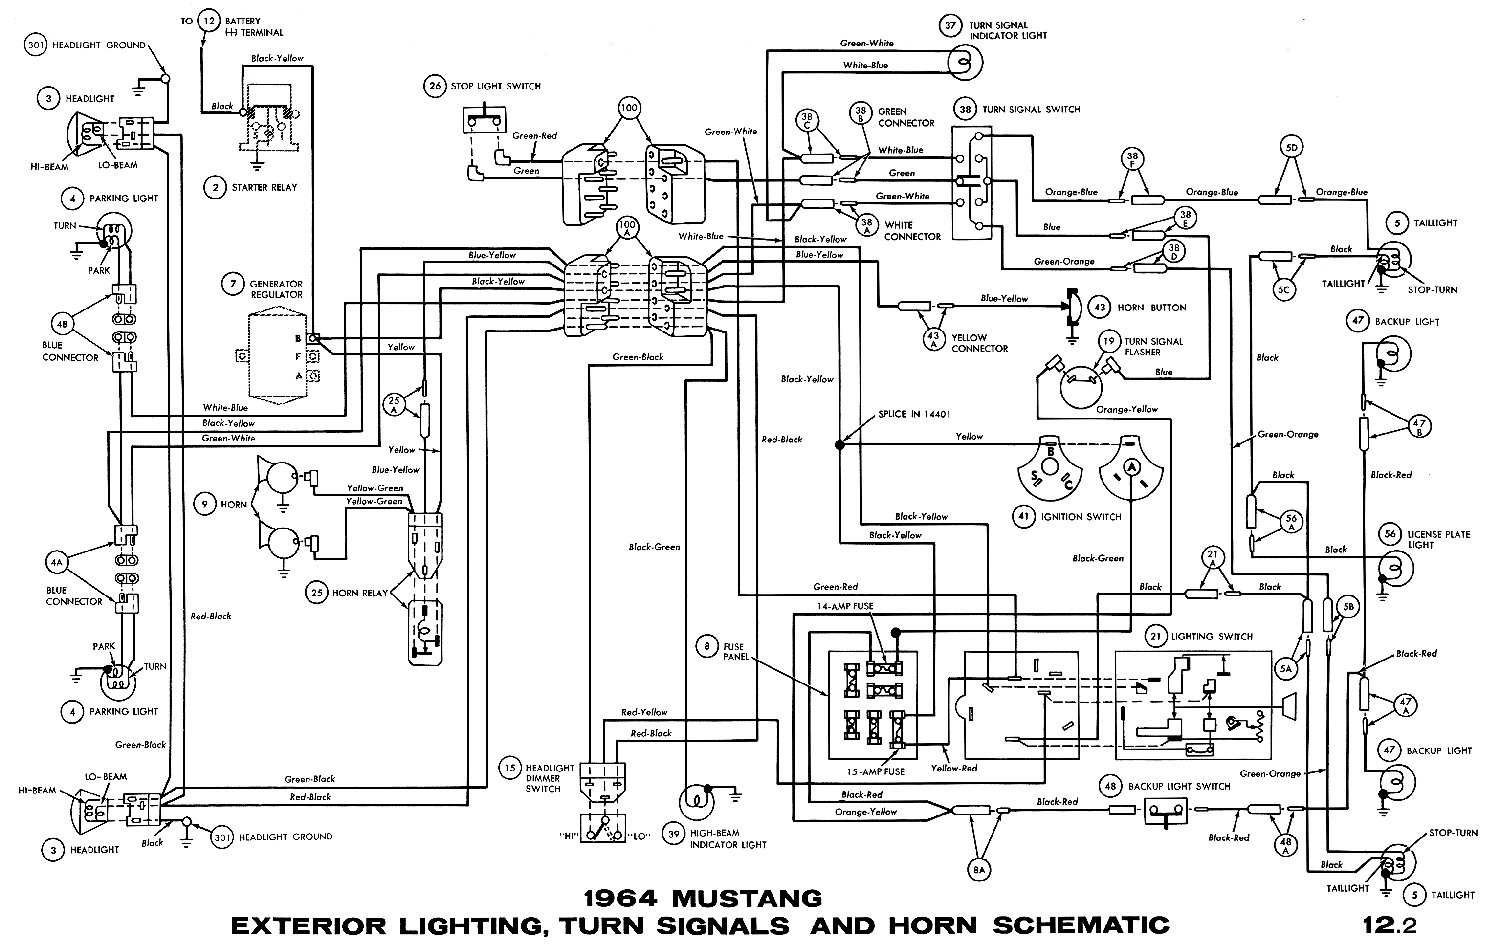 hight resolution of 1969 mustang fuse diagram schema wiring diagram 1969 mustang fuse box wiring diagram 1969 mustang fuse diagram